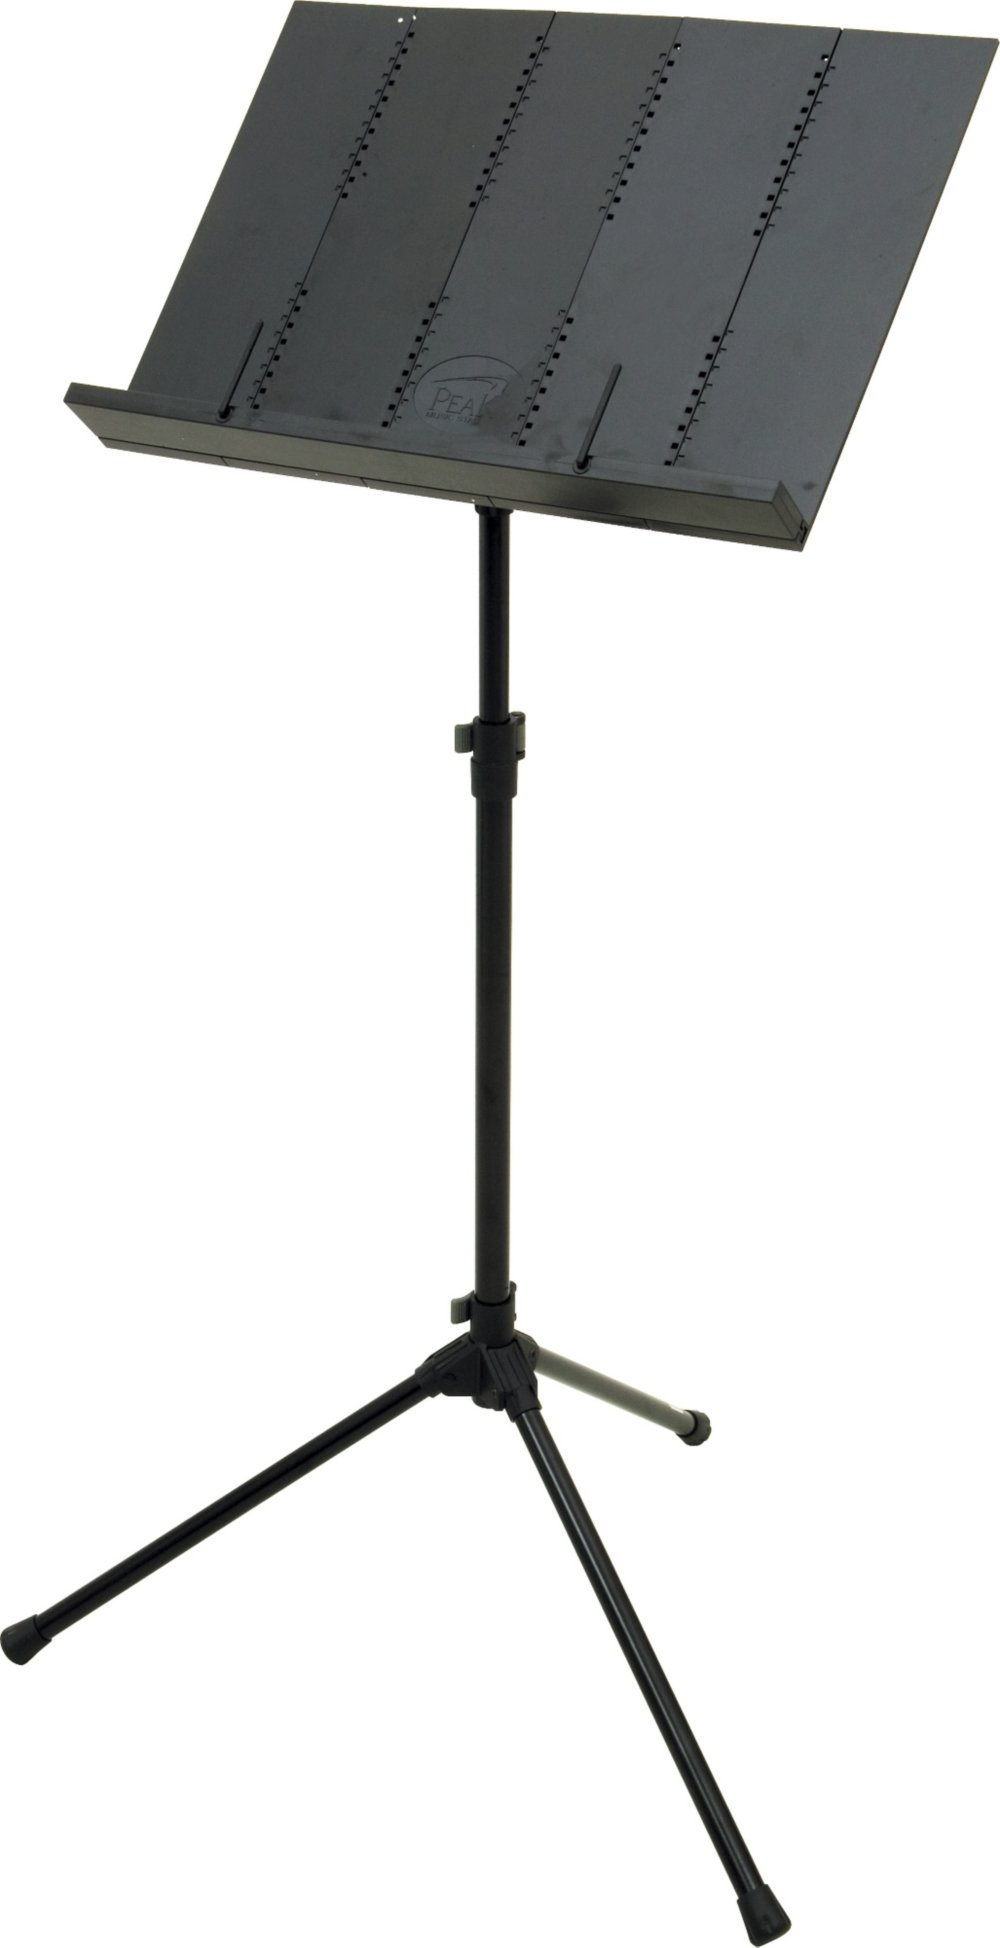 Peak Music Stands Portable Music Stand Black